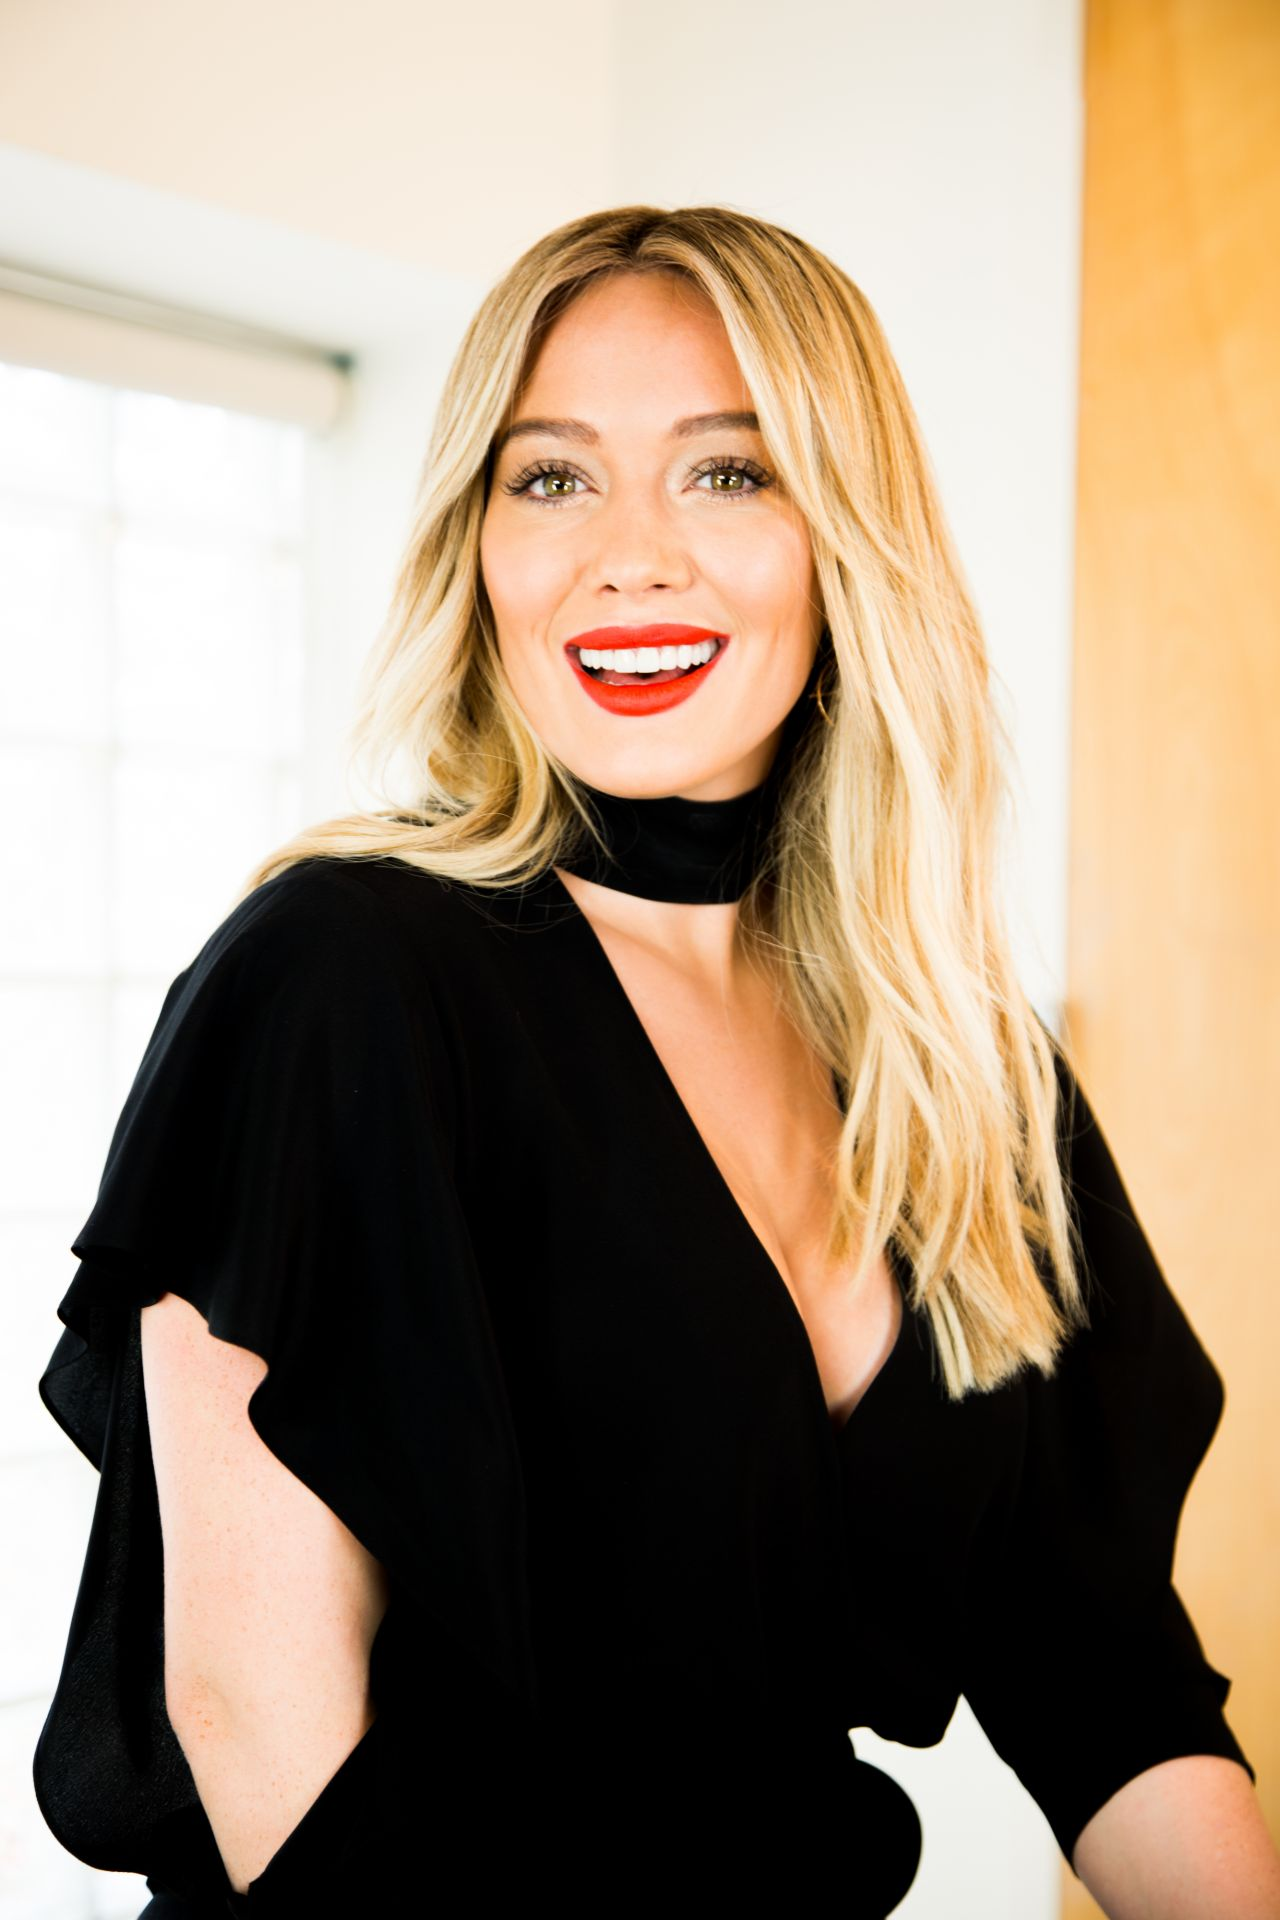 Hilary Duff - Photoshoot for The New York Times, 2017 Hilary Duff